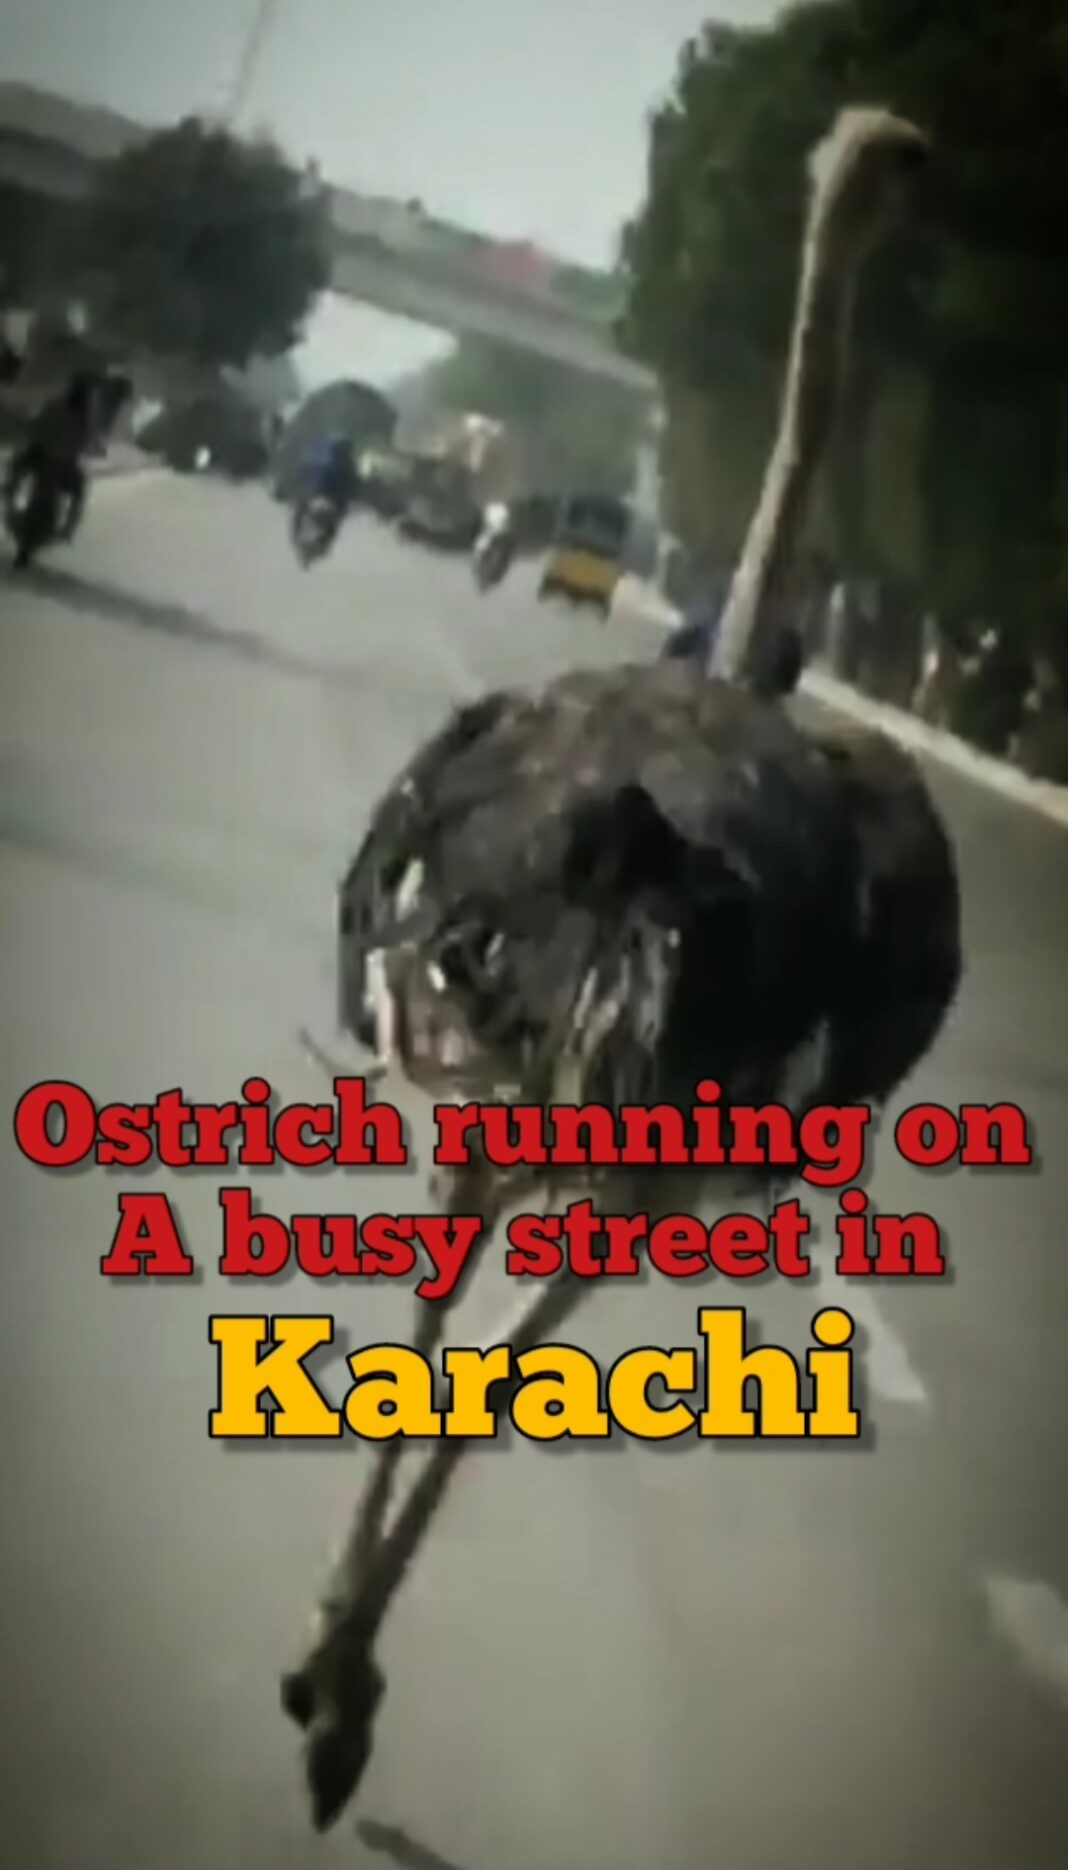 You can't miss run this video of an Ostrich running on a busy street in Karachi